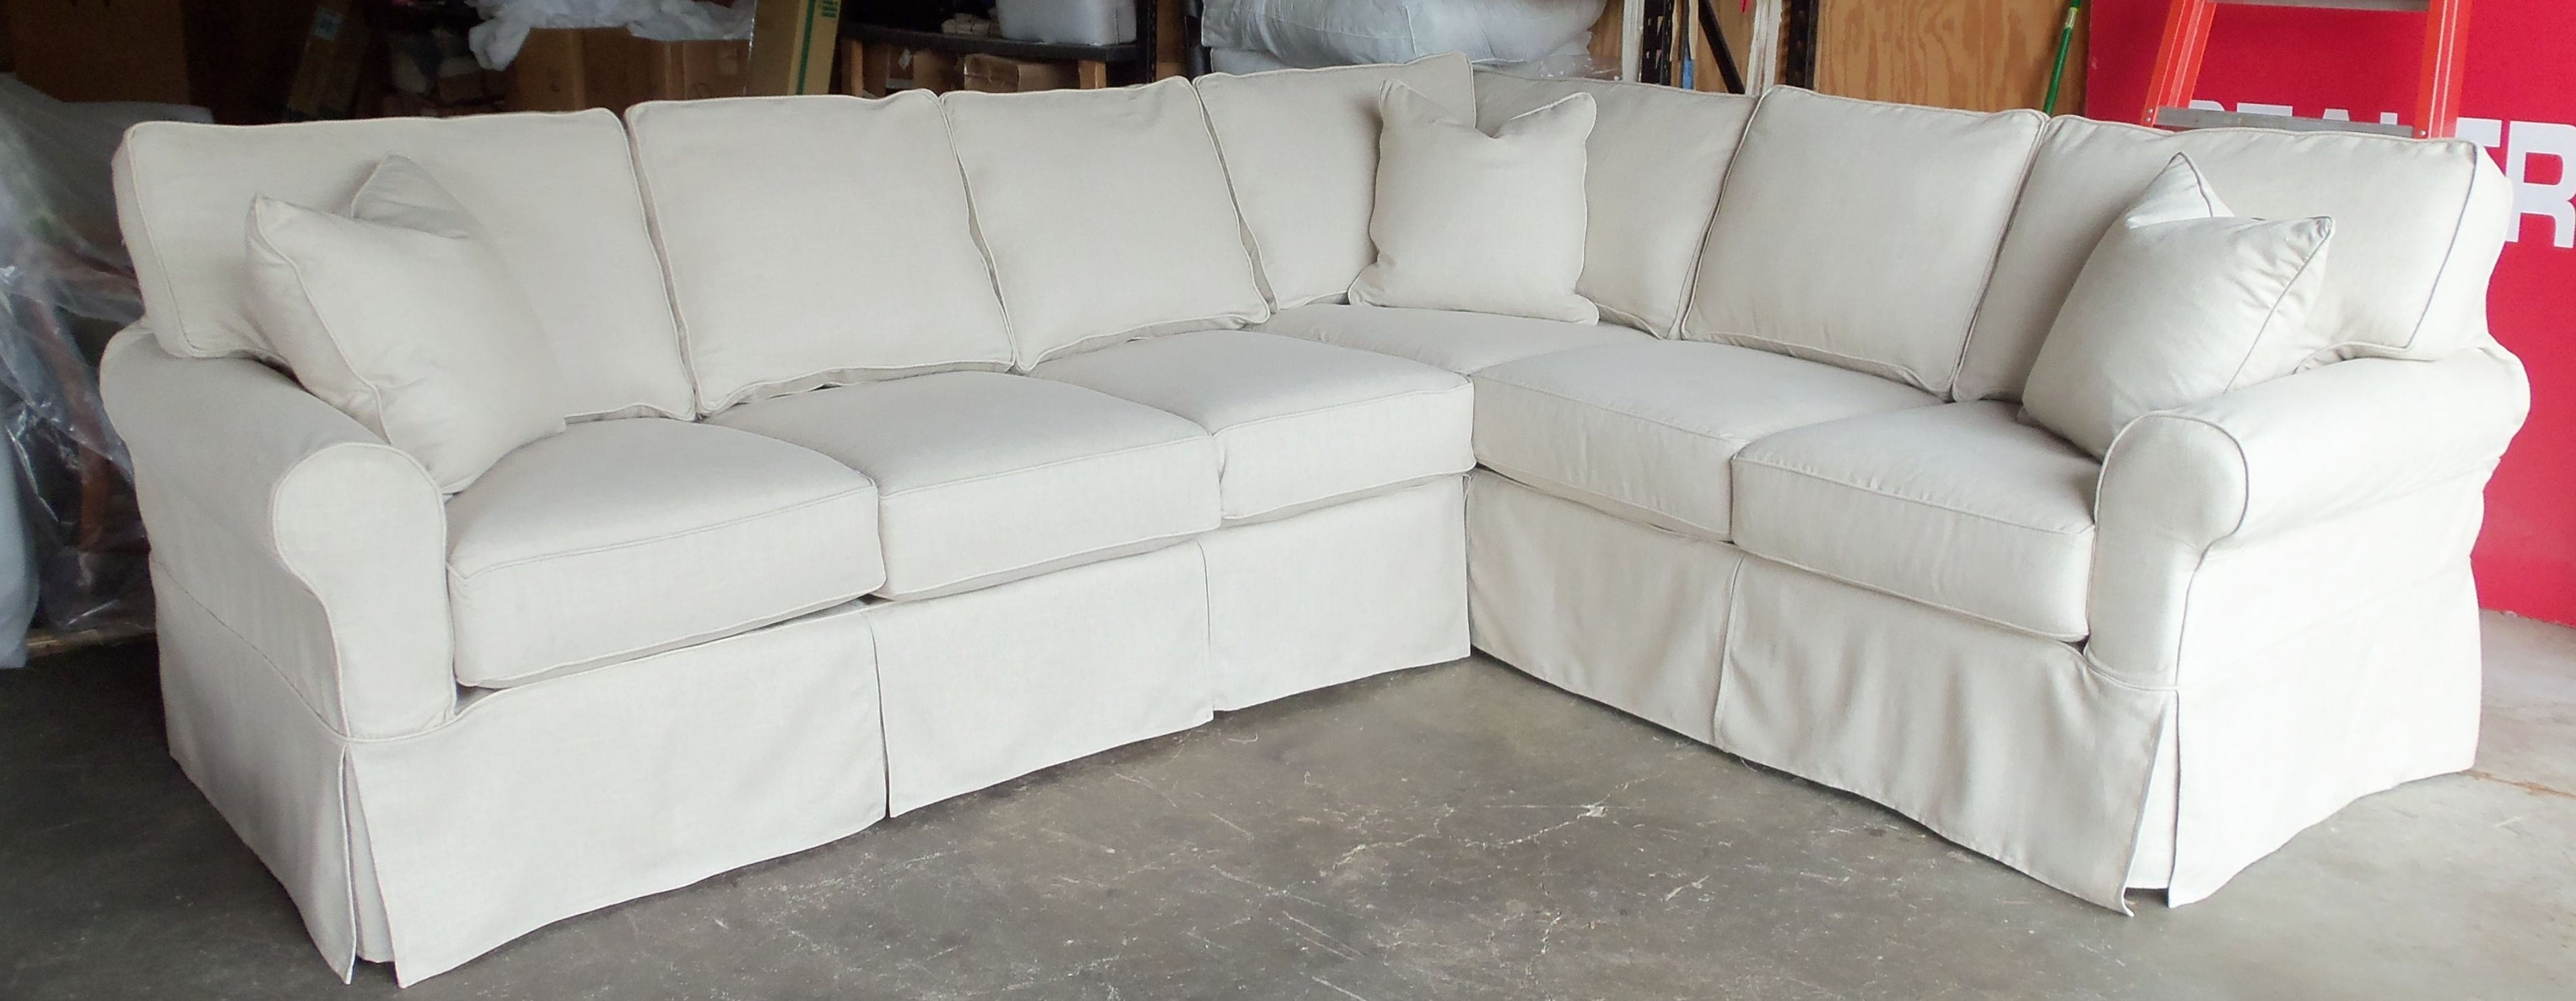 Current Cheap Sectional Sofas In Birmingham Al (View 4 of 20)